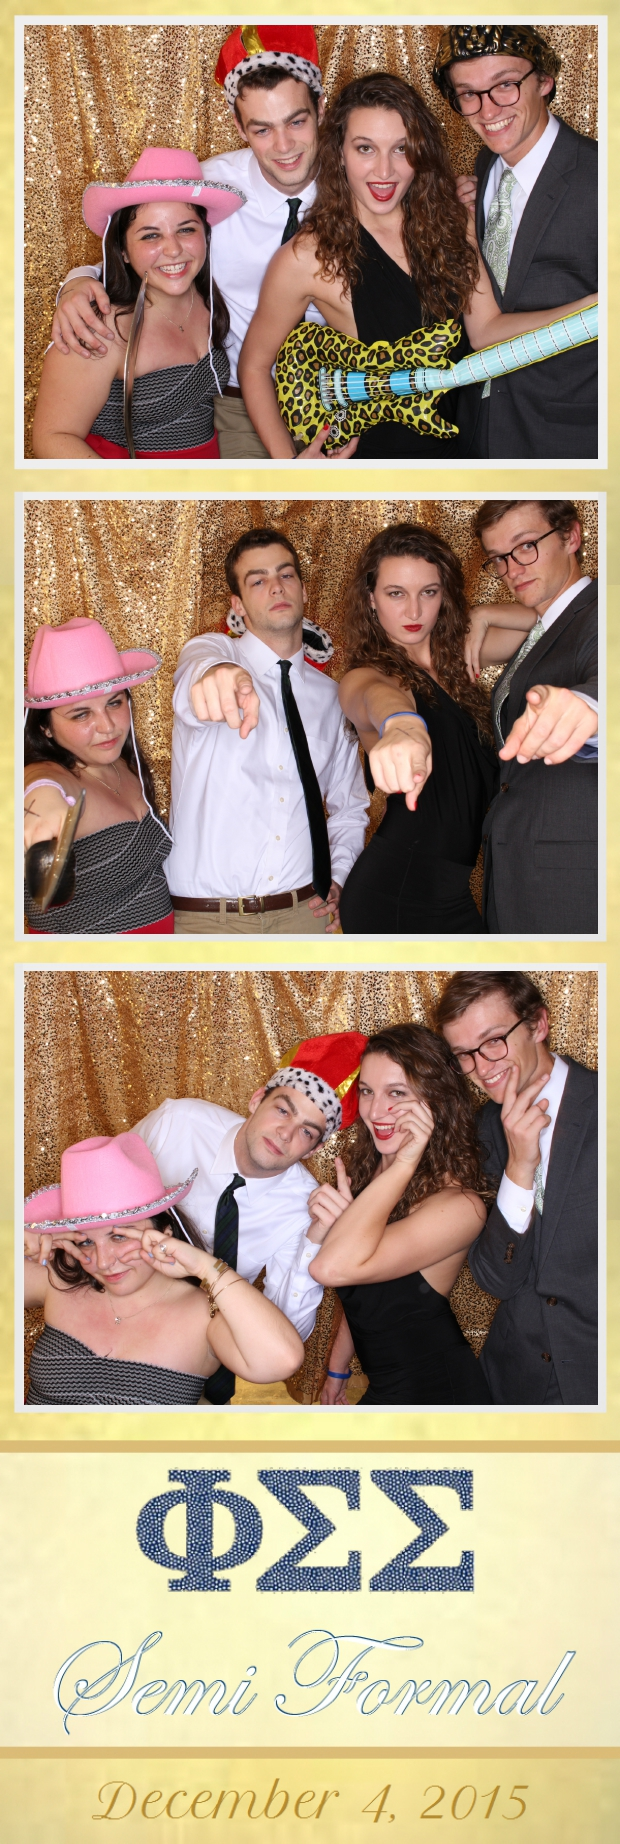 Guest House Events Photo Booth Phi Sigma Sigma Semi Formal (26).jpg